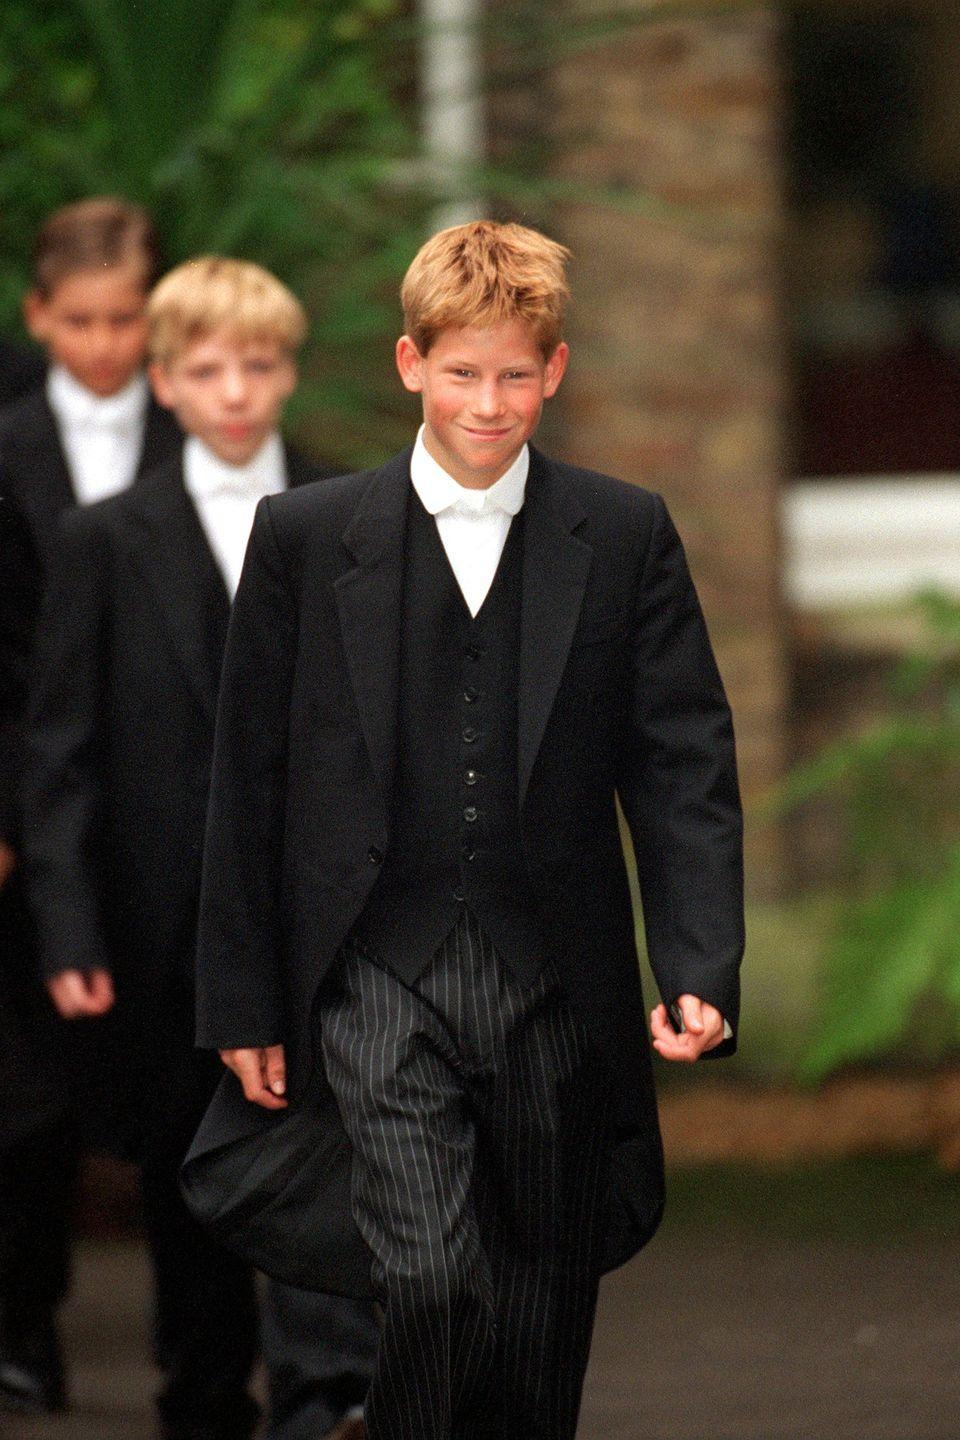 <p>Harry is all smiles as he leaves for his first day of classes at Eton College.</p>